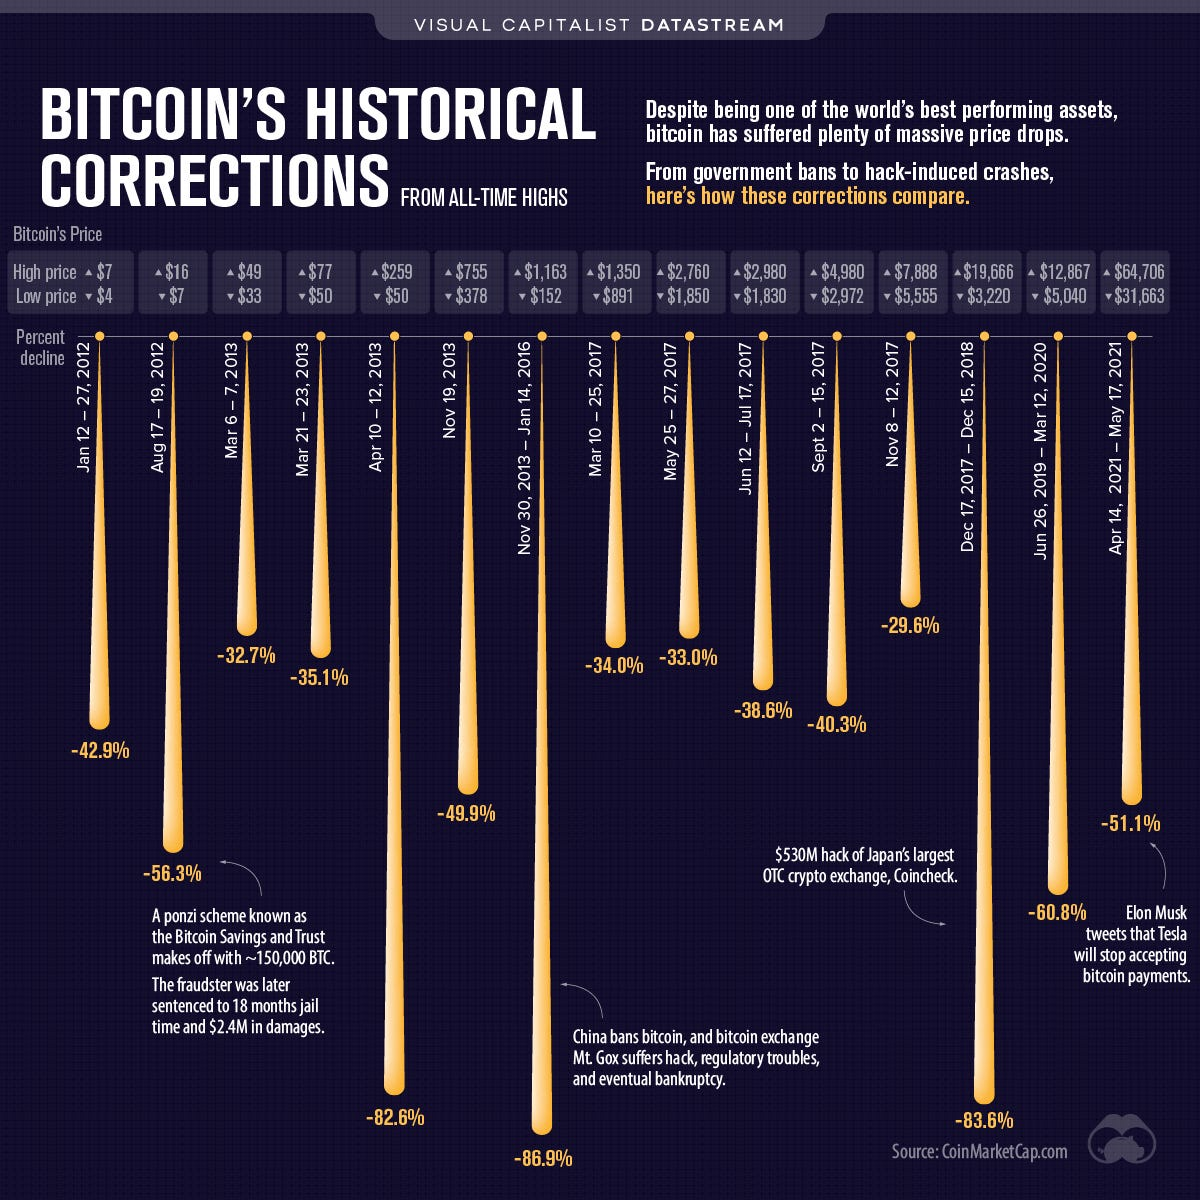 Bitcoin historical corrections from all time highs